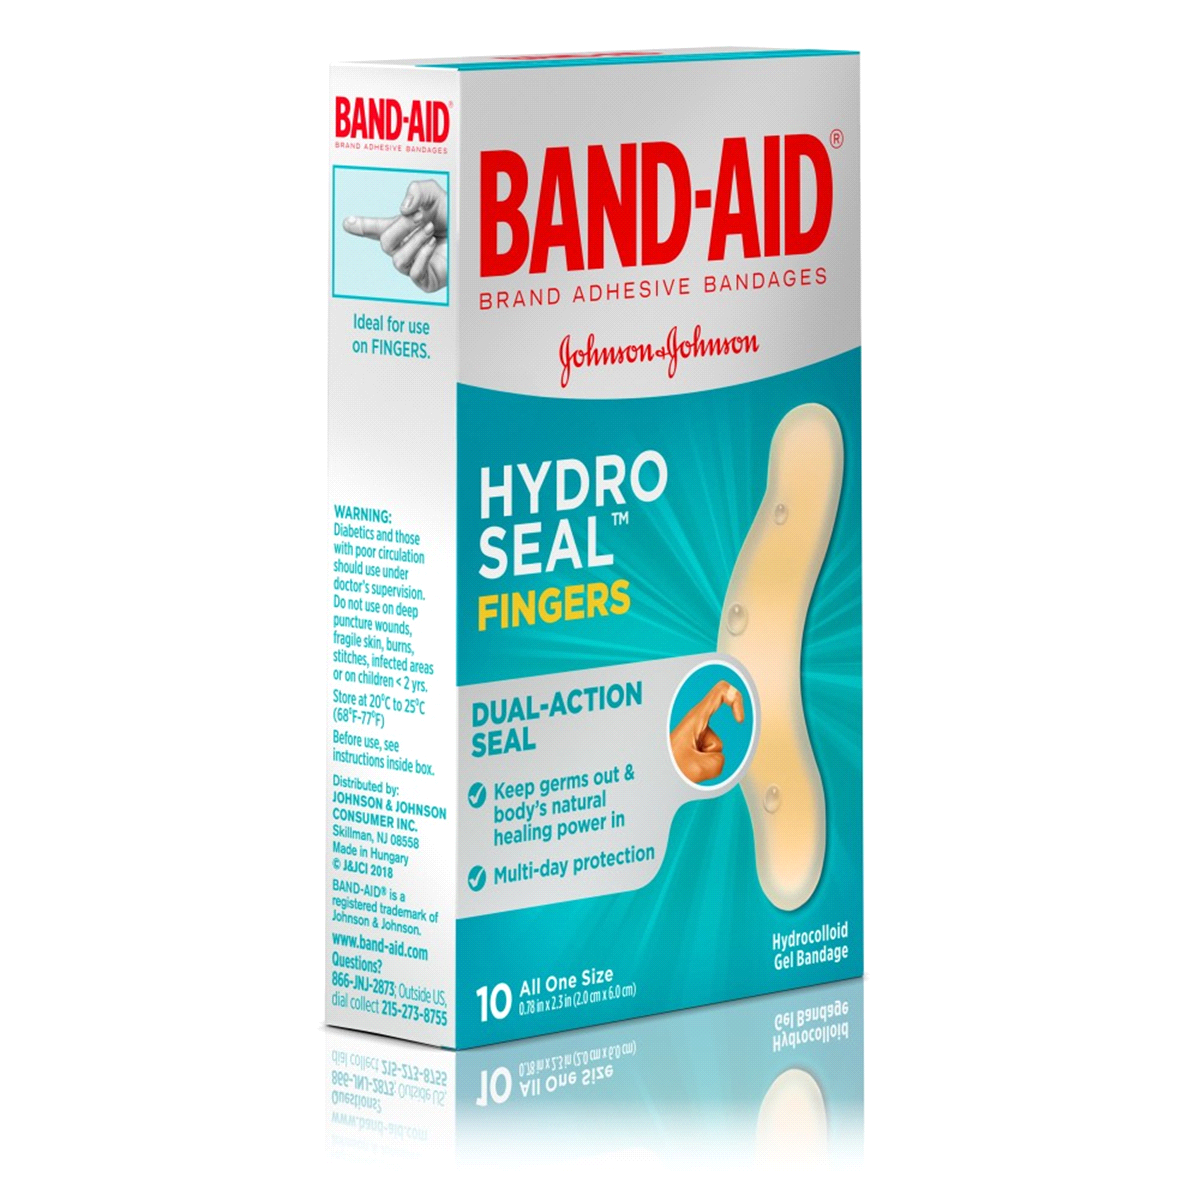 slide 5 of 6, BAND-AID Hydro Seal Fingers Adhesive Bandages,